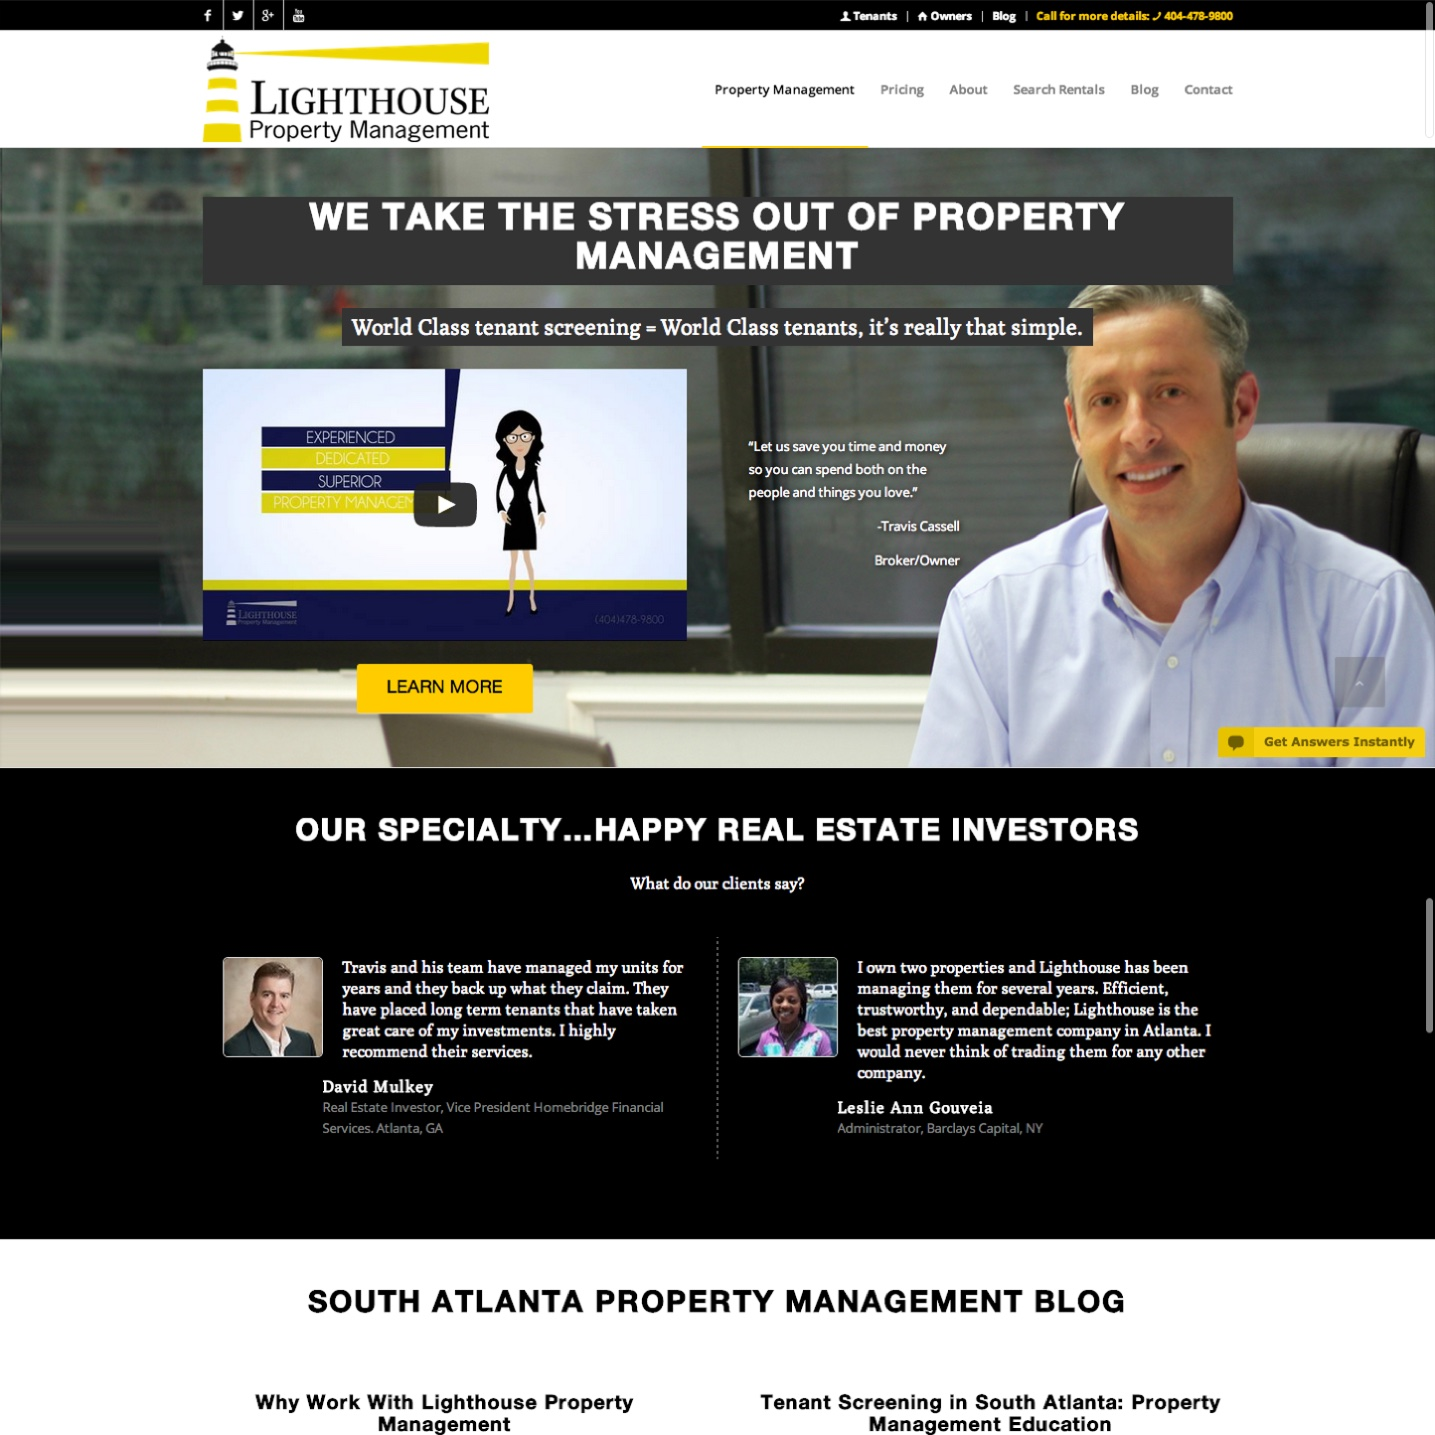 South Atlanta Property Management Website Design